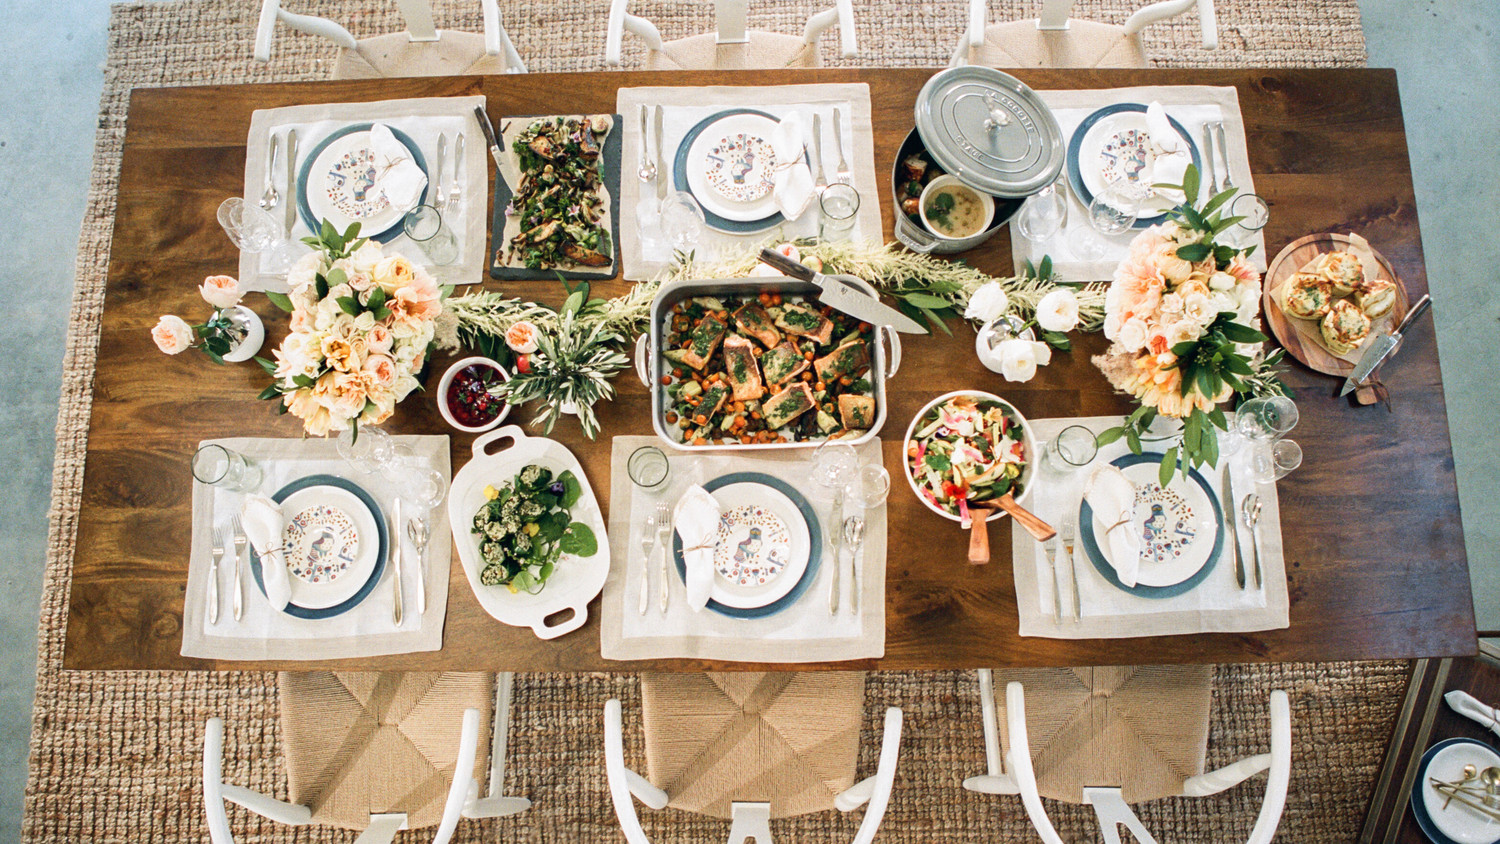 Real Weddings Zola: How To Be A Great Thanksgiving Guest At Your In-Laws